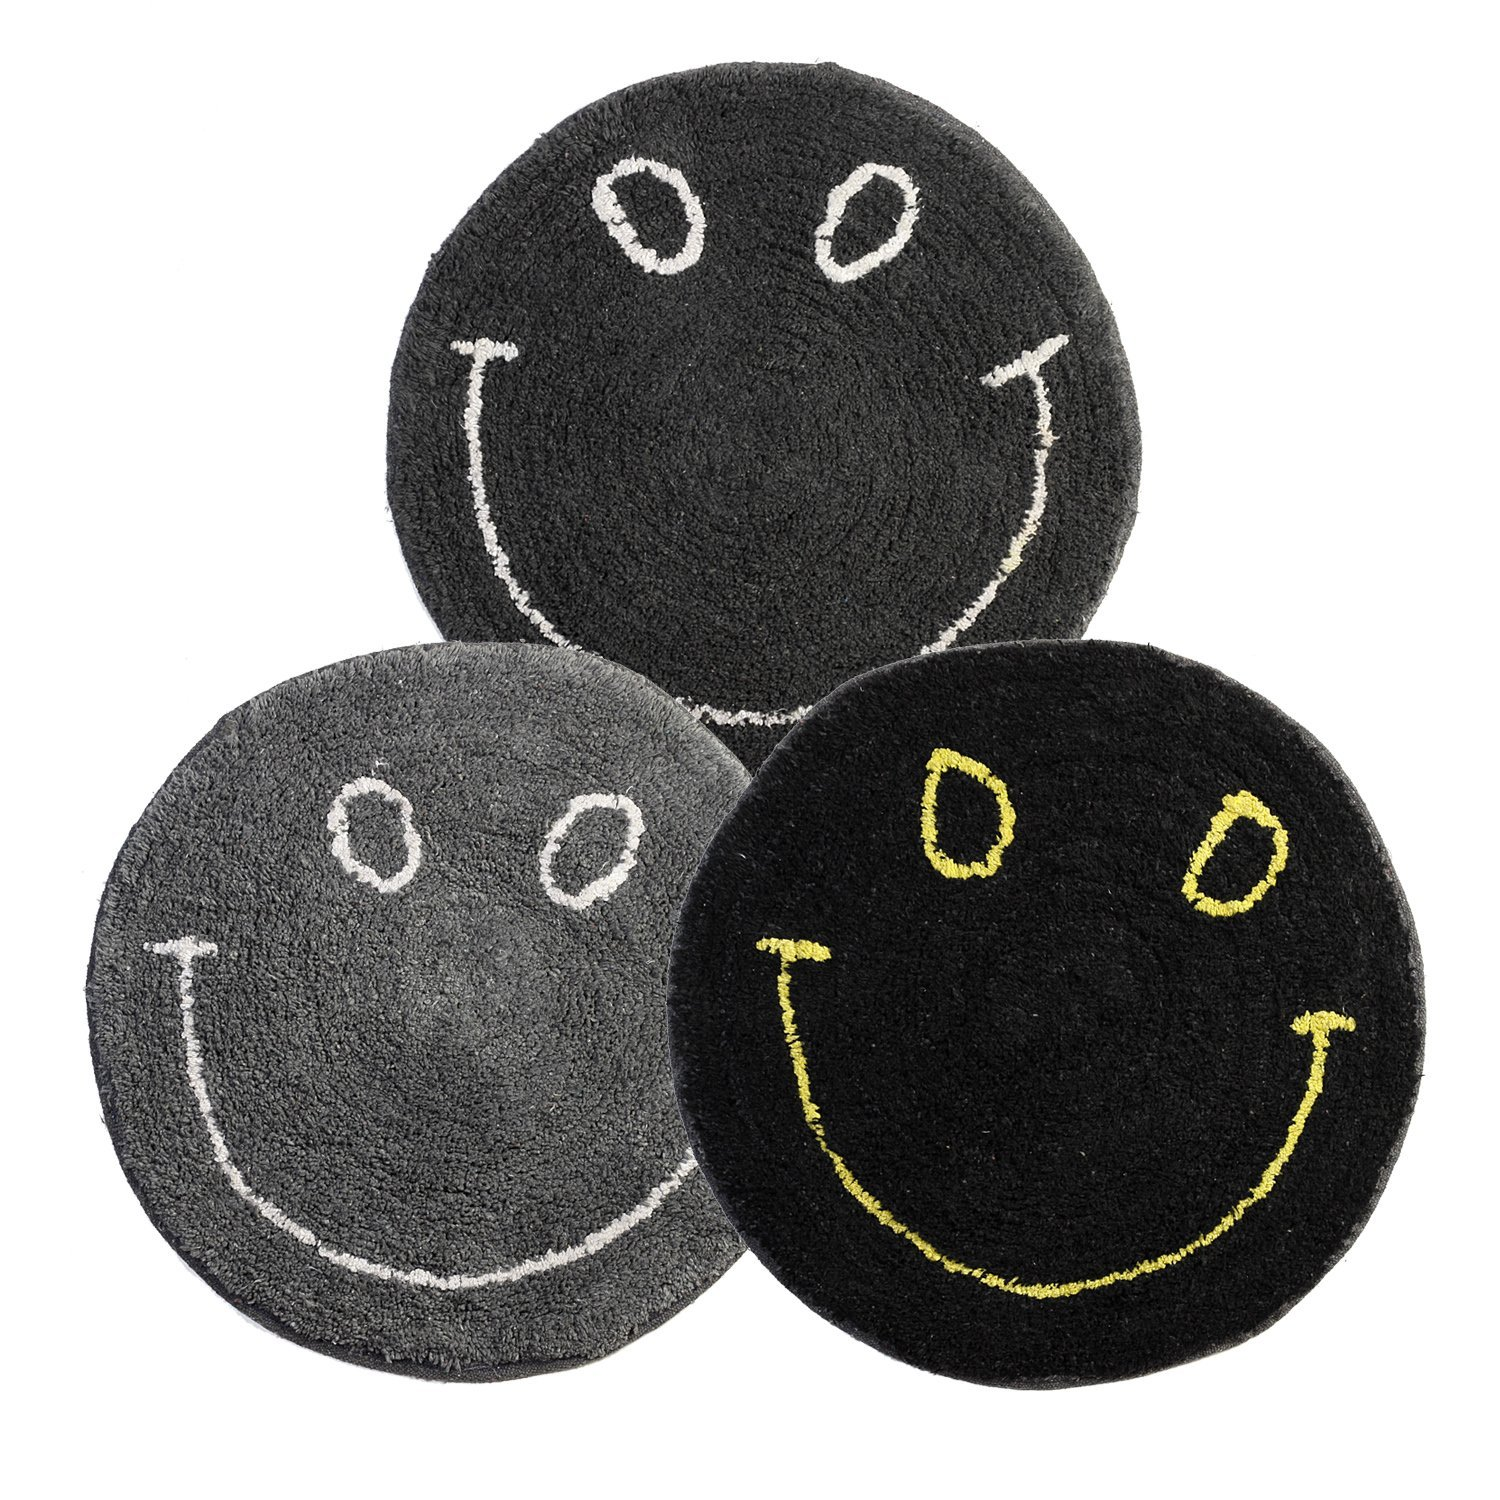 Dreaming Cotton 100-Percent Cotton Round Medium sized Smiley Tufted Bath Rug or Bath Mat or Door Rug, Set of 3, Dark colored